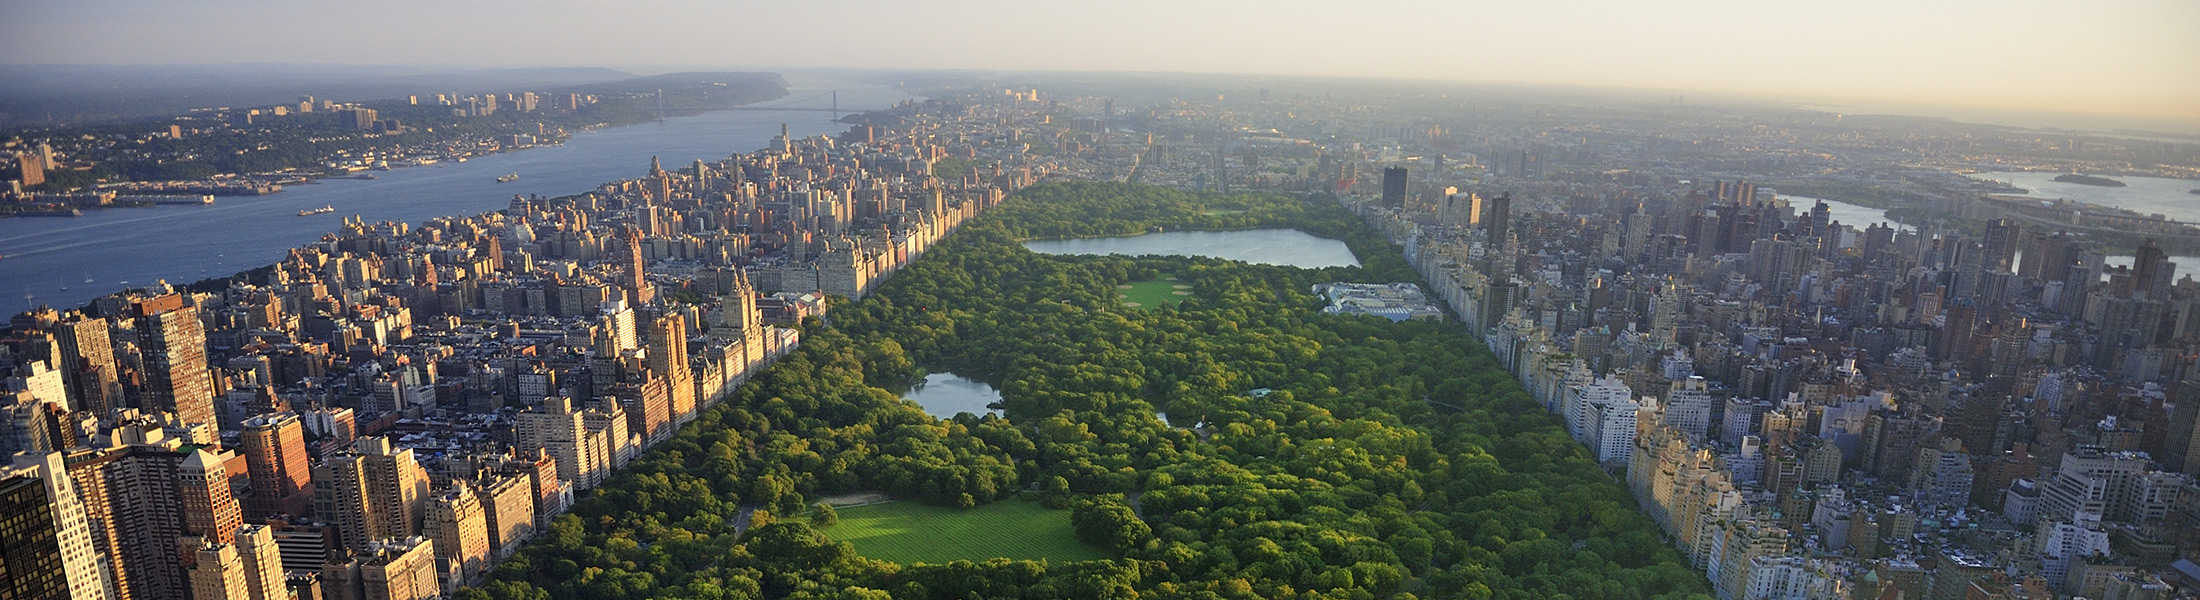 Aerial view of Central Park in New York in April